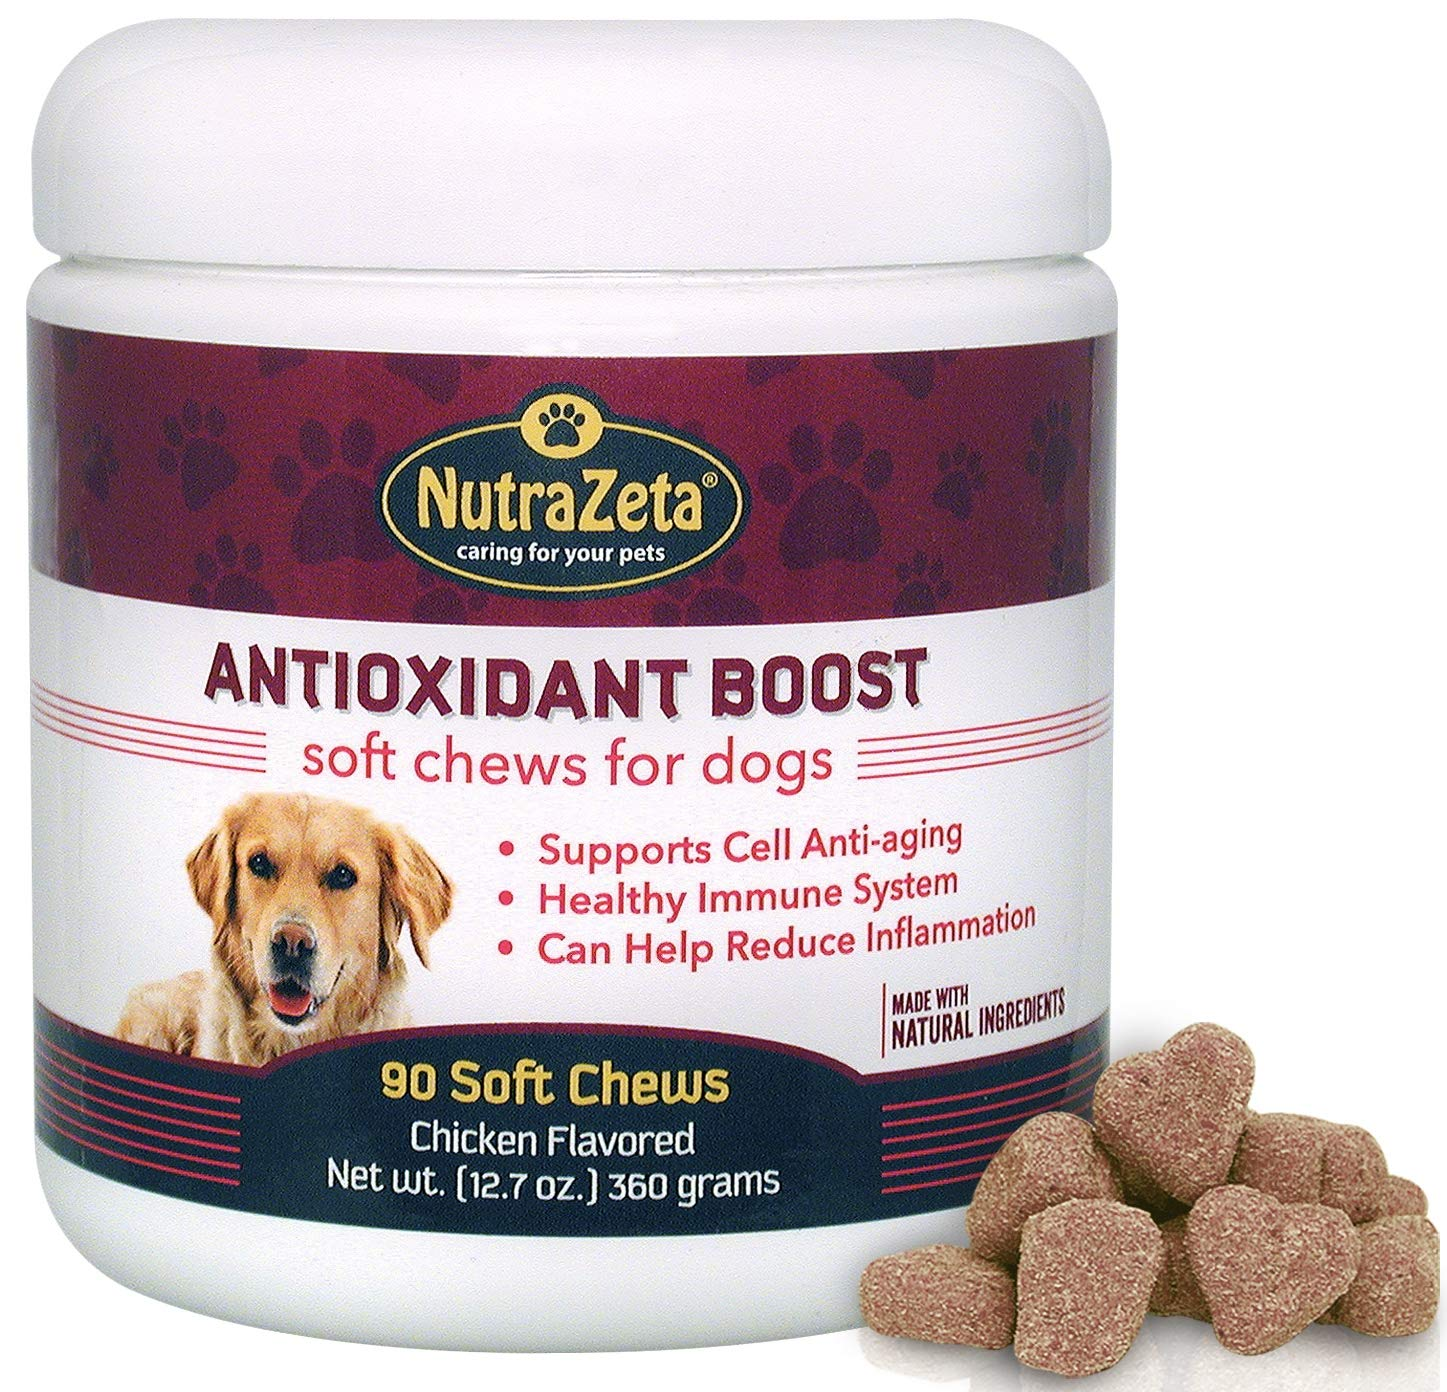 Natural Anti Inflammatory Joint Supplement for Dogs - Premium Antioxidants for Dogs to Help Ease Hip & Joint discomfort + Immune System Boost and Cell DNA Health Protection - 90 Soft Chews - Made USA by NutraZeta